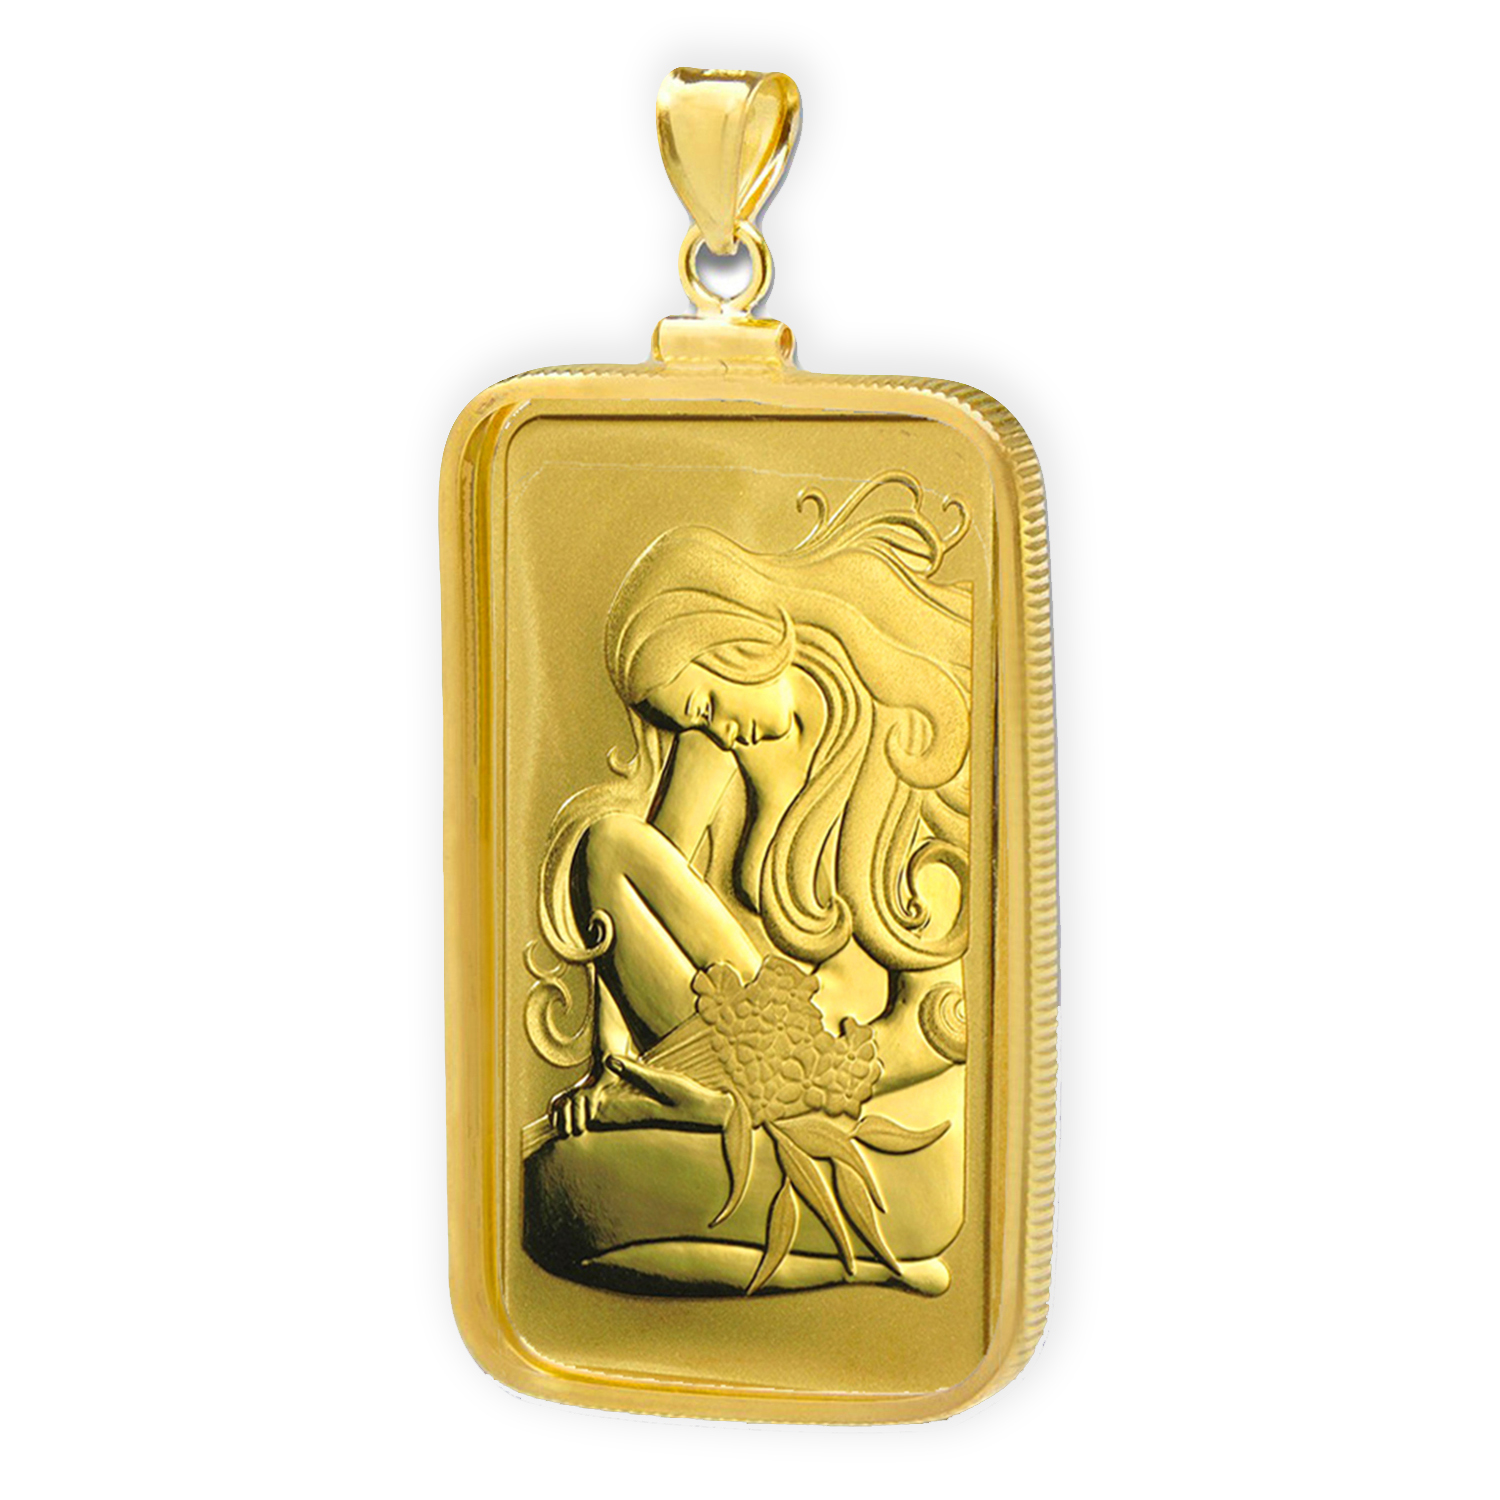 1 Oz Gold Bar Perth Mint Oriana Pendant Buy Gold